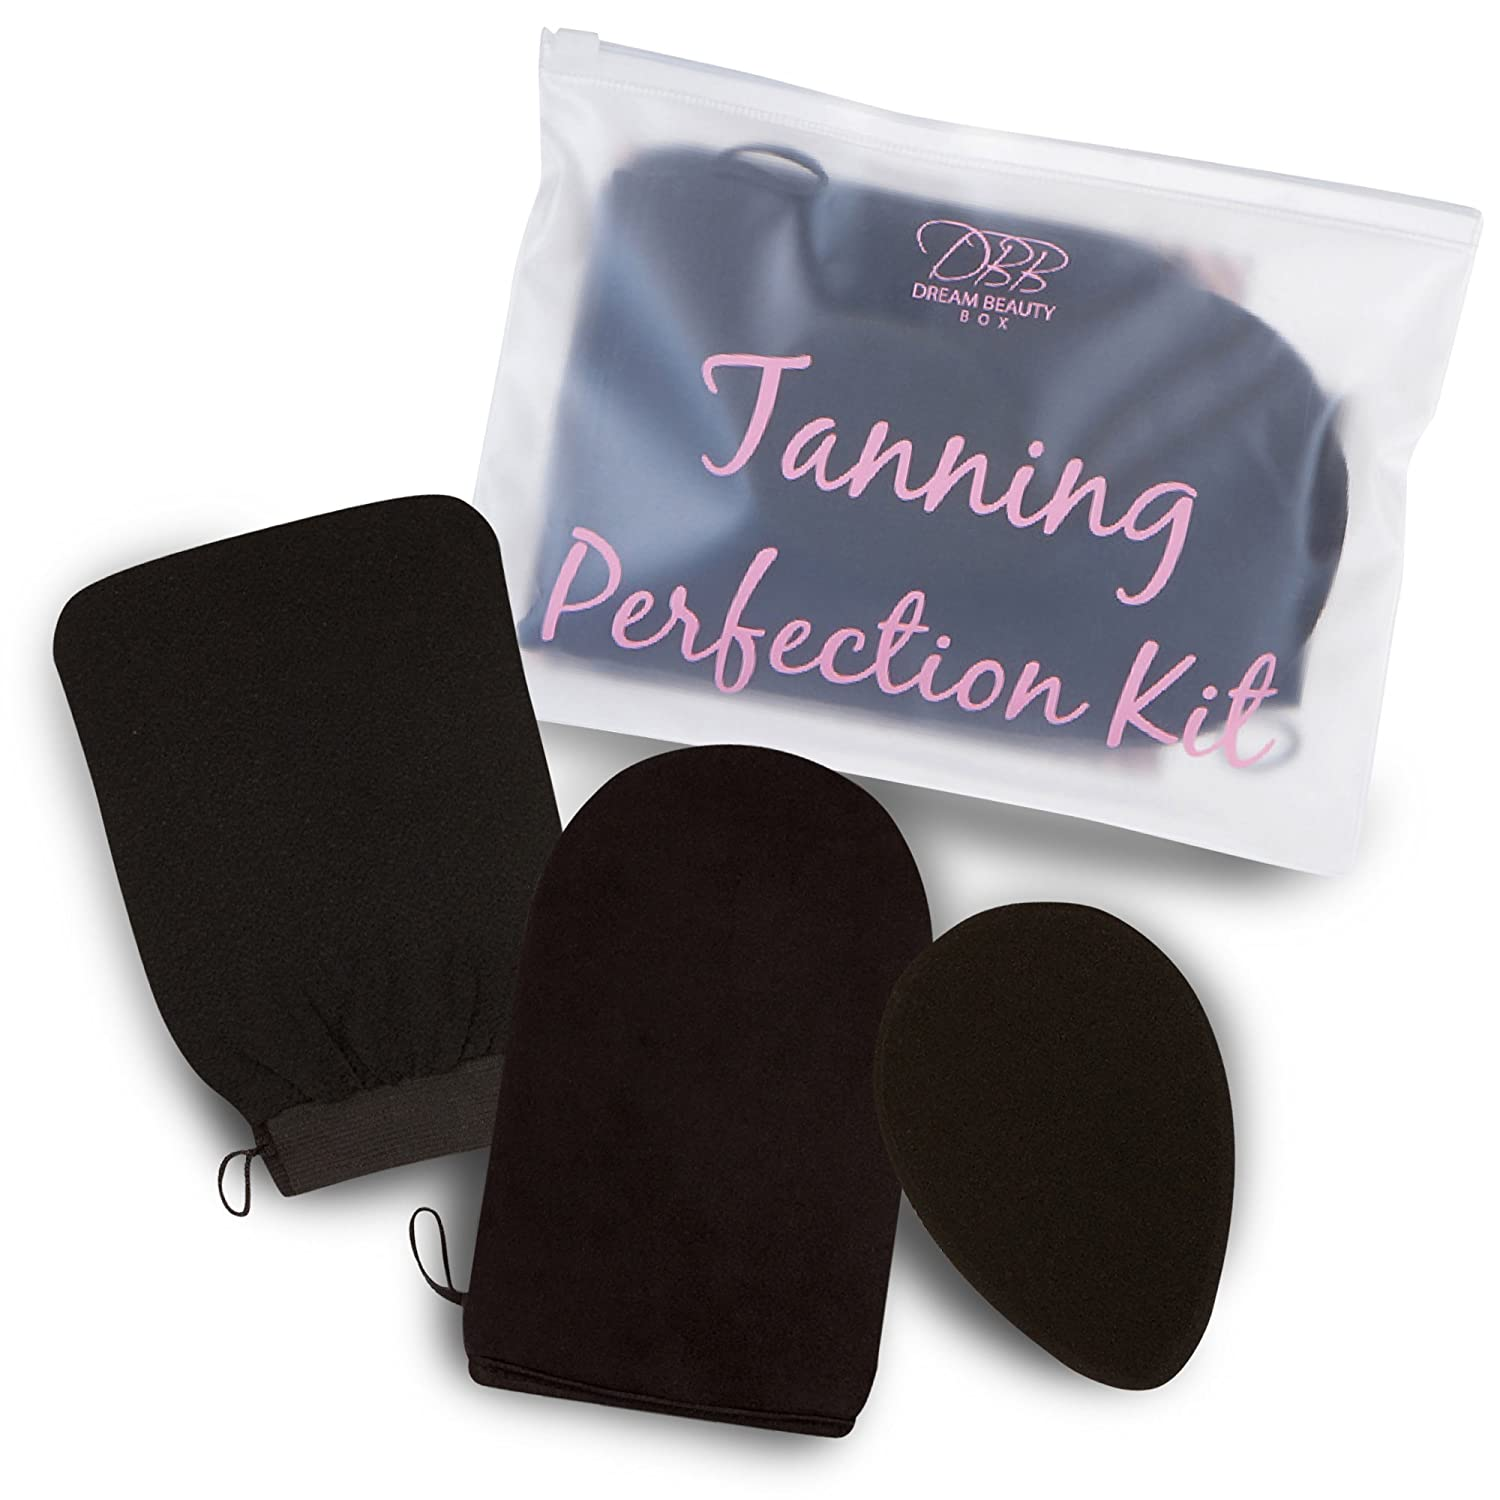 Dream Beauty Box Self Tanning Applicator Mitt - Including Tan Exfoliator/Remover Glove & Body Blender Sponge - The Ultimate Kit For A Streak-Free, Sunless Tan! BONUS Waterproof Travel Bag